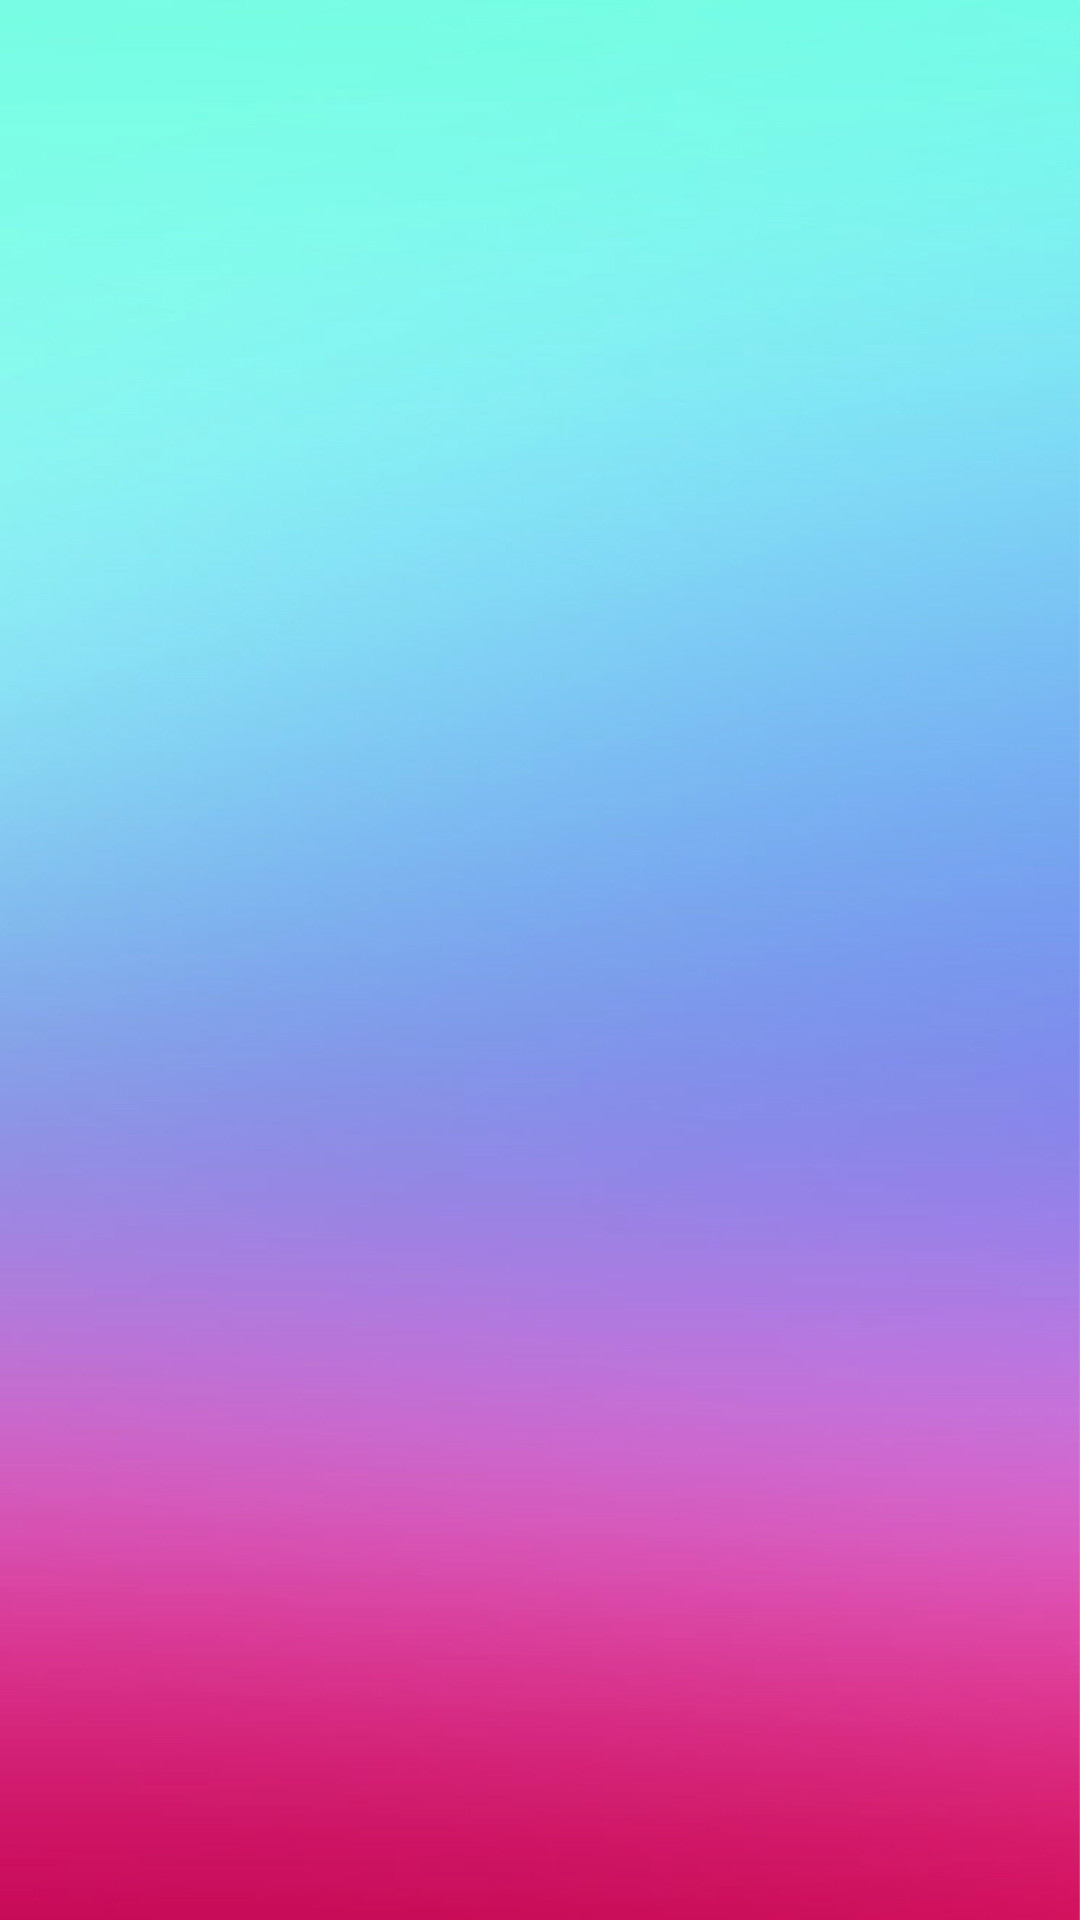 Bright Blue Color Blocking On One Wall And Ceiling: Bright Color Backgrounds ·① WallpaperTag